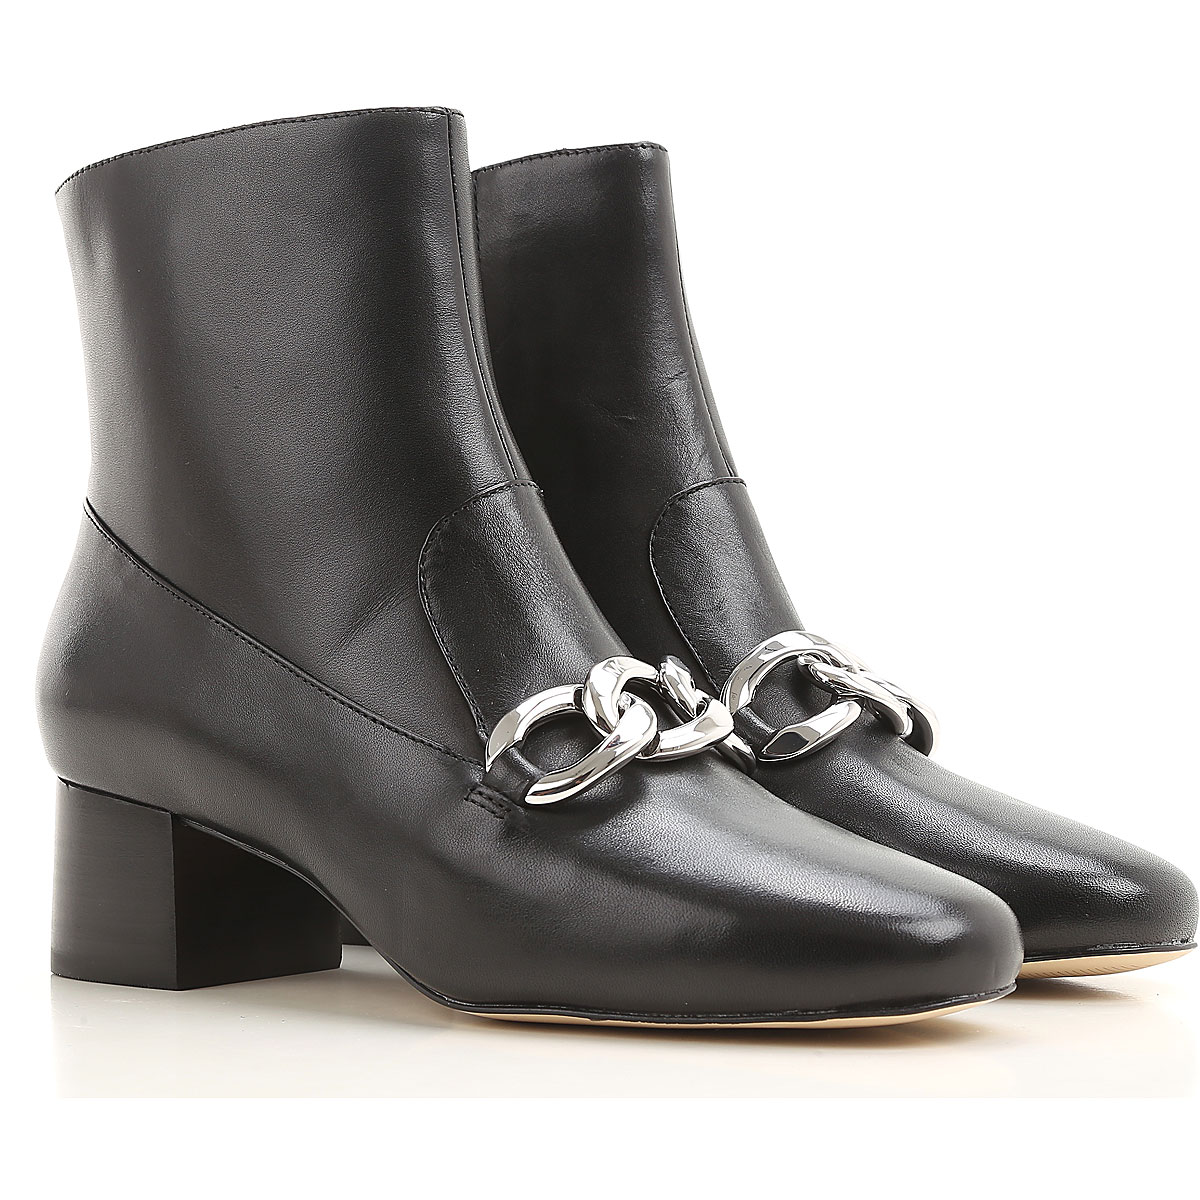 Michael Kors Boots for Women, Booties On Sale in Outlet, Black, Leather, 2019, 6.5 7